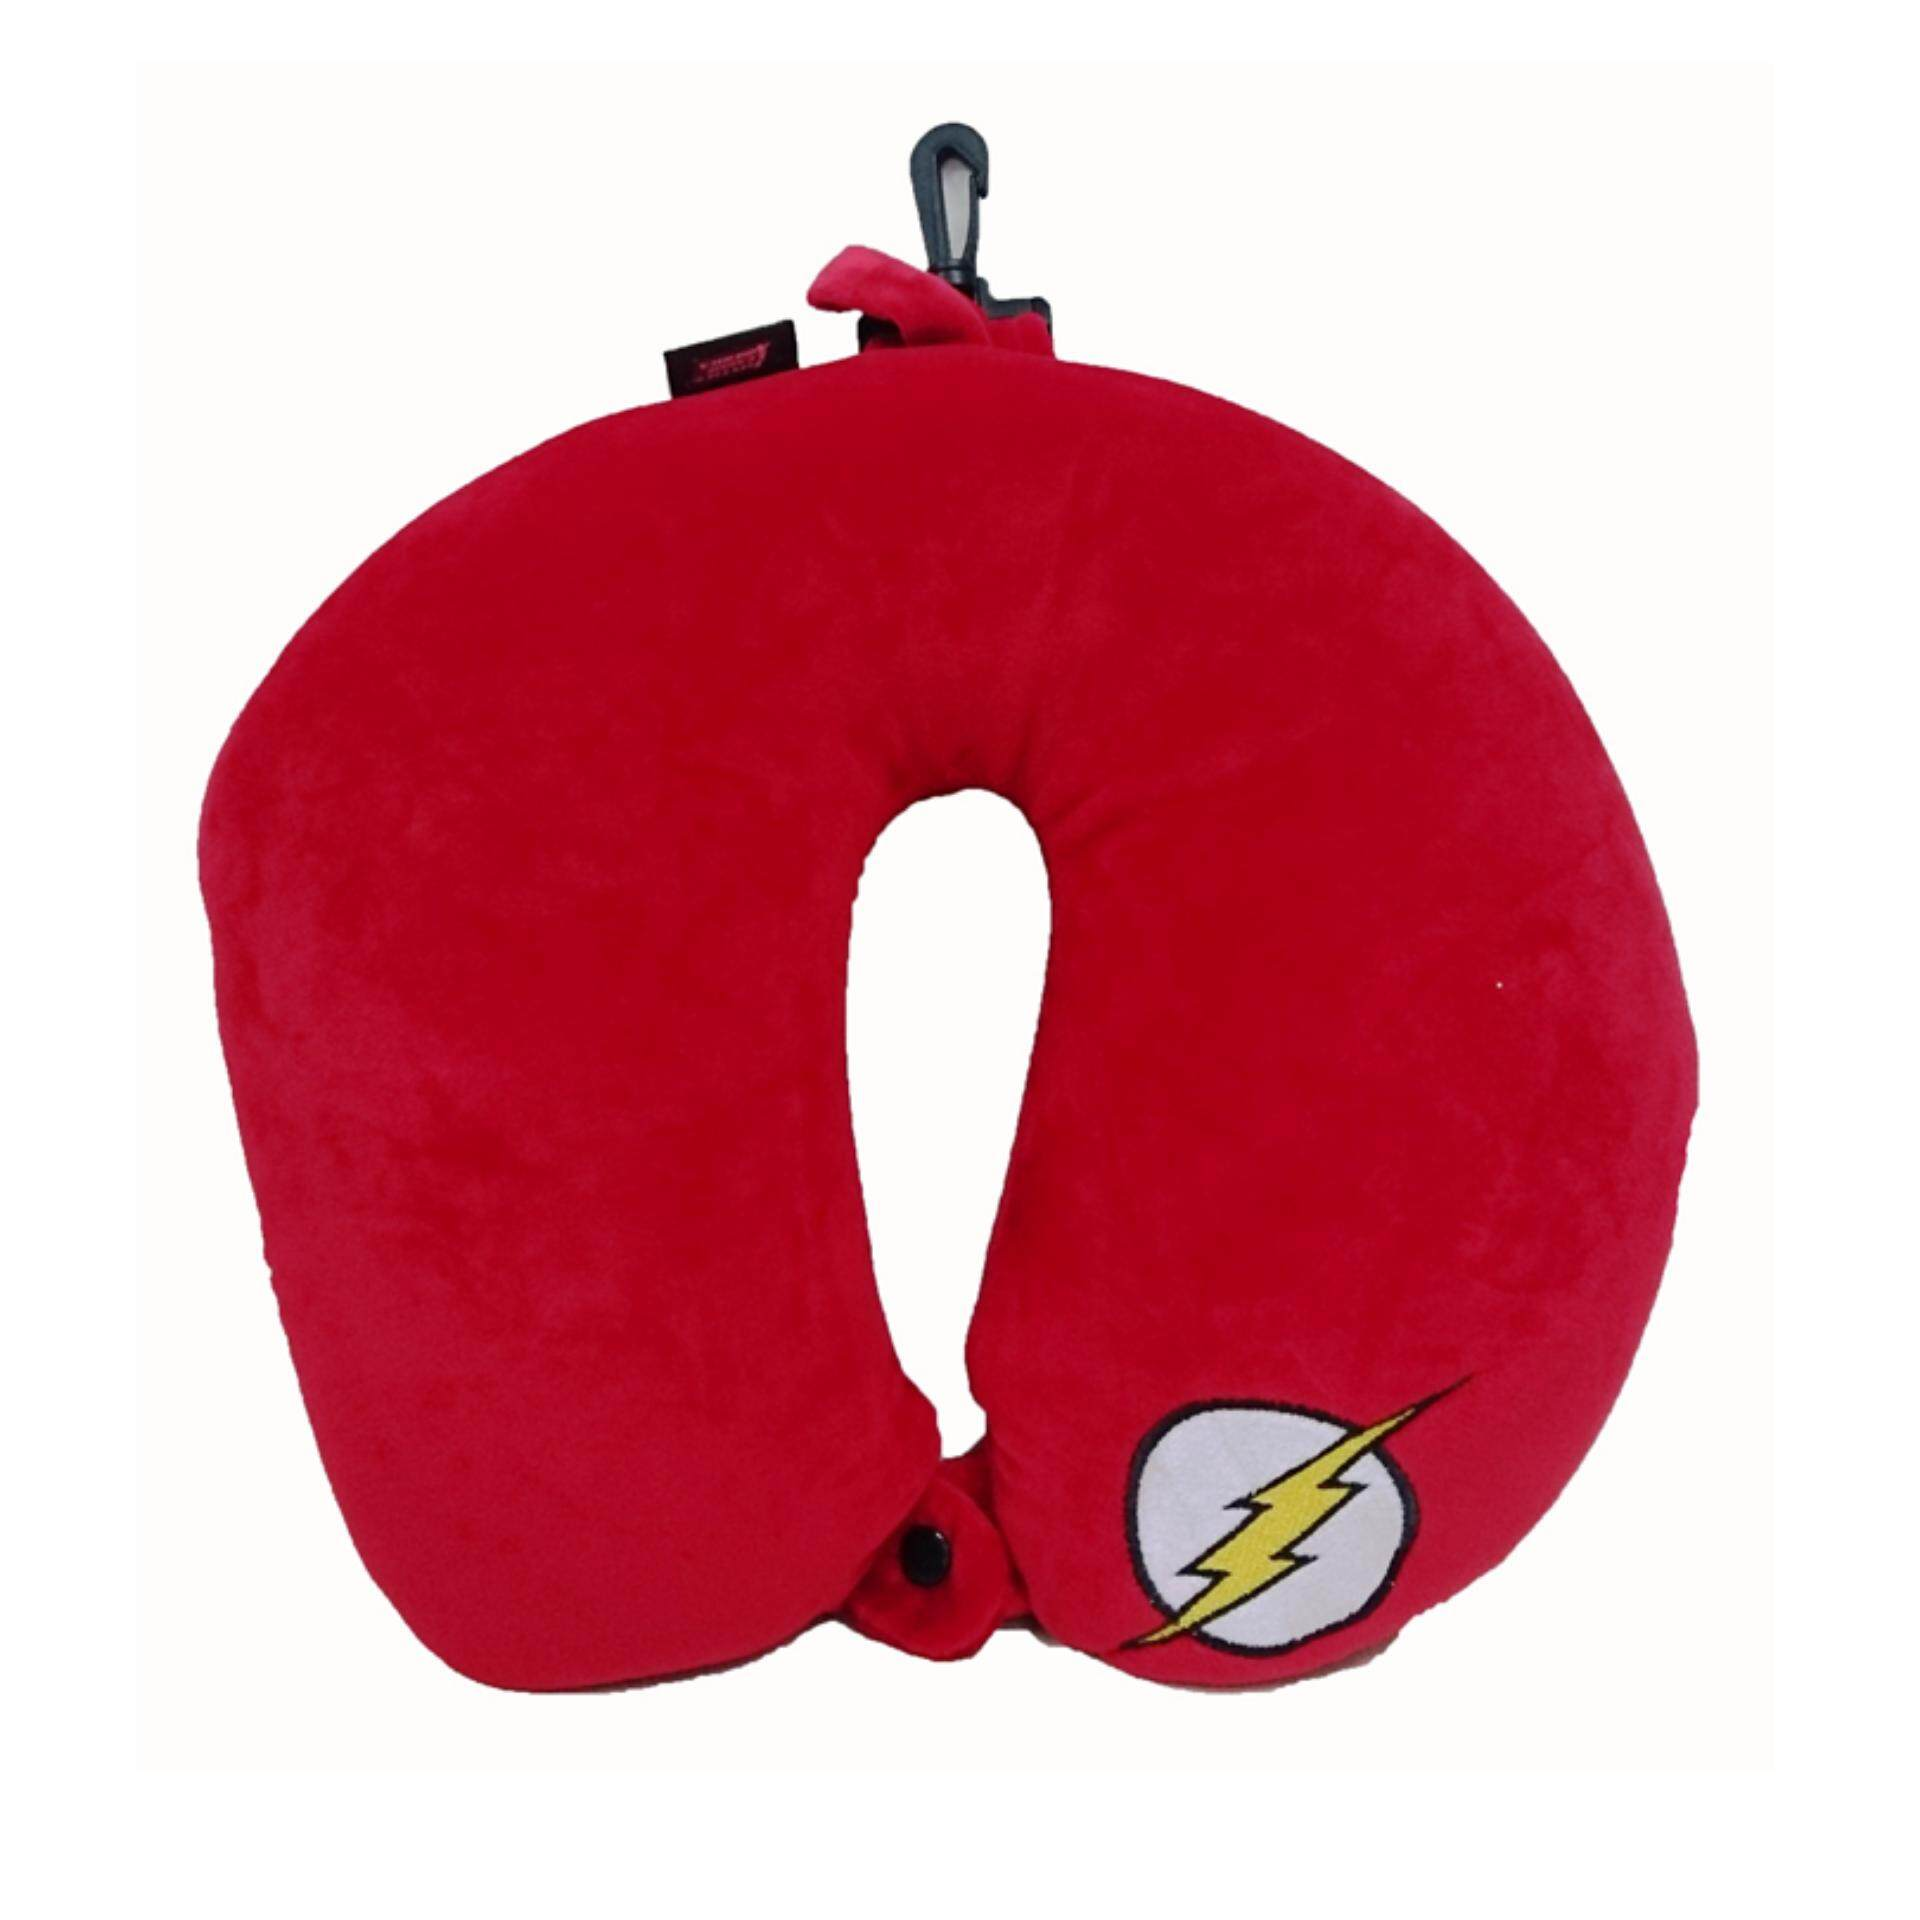 DC Comics Justice League Neck Cushion - Flash